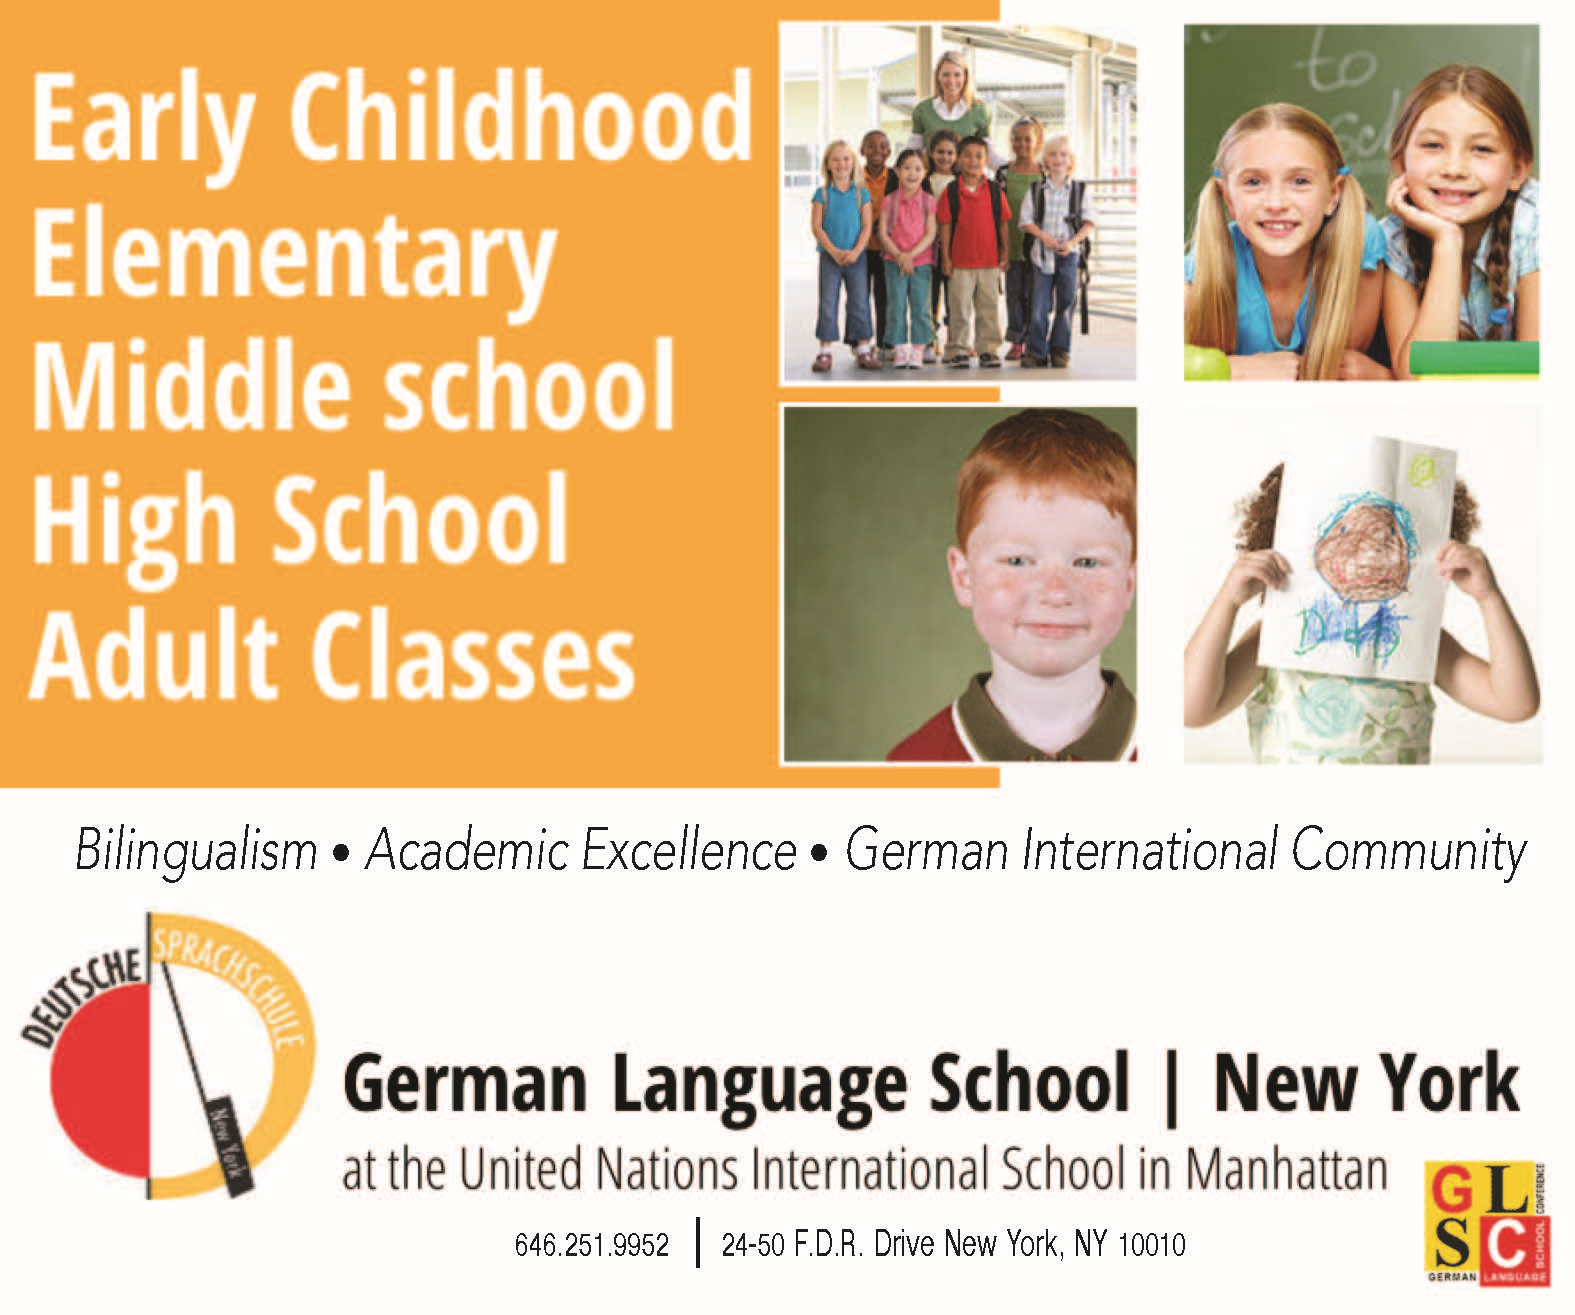 German Language School New York